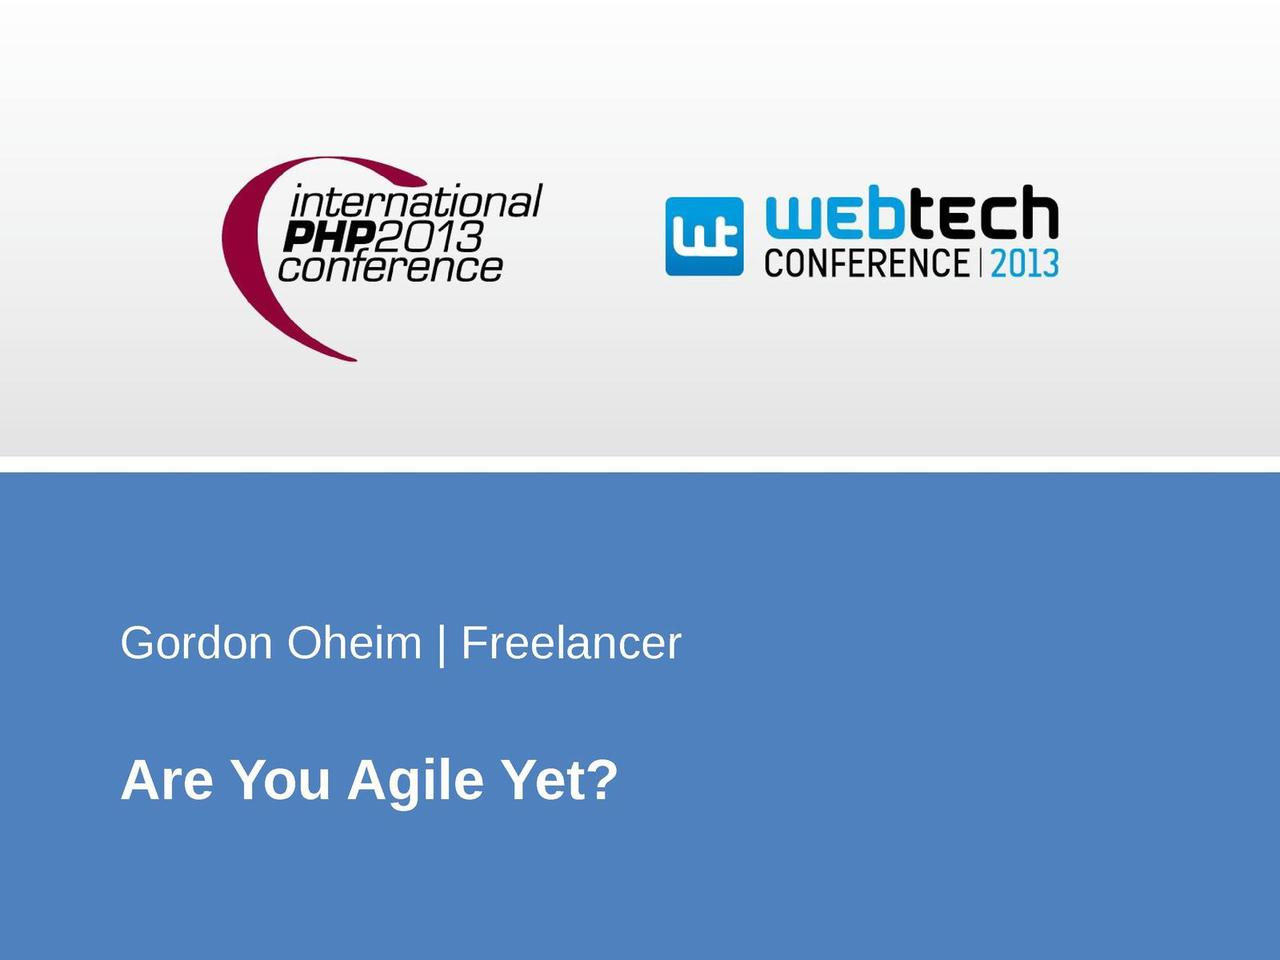 Are You Agile Yet